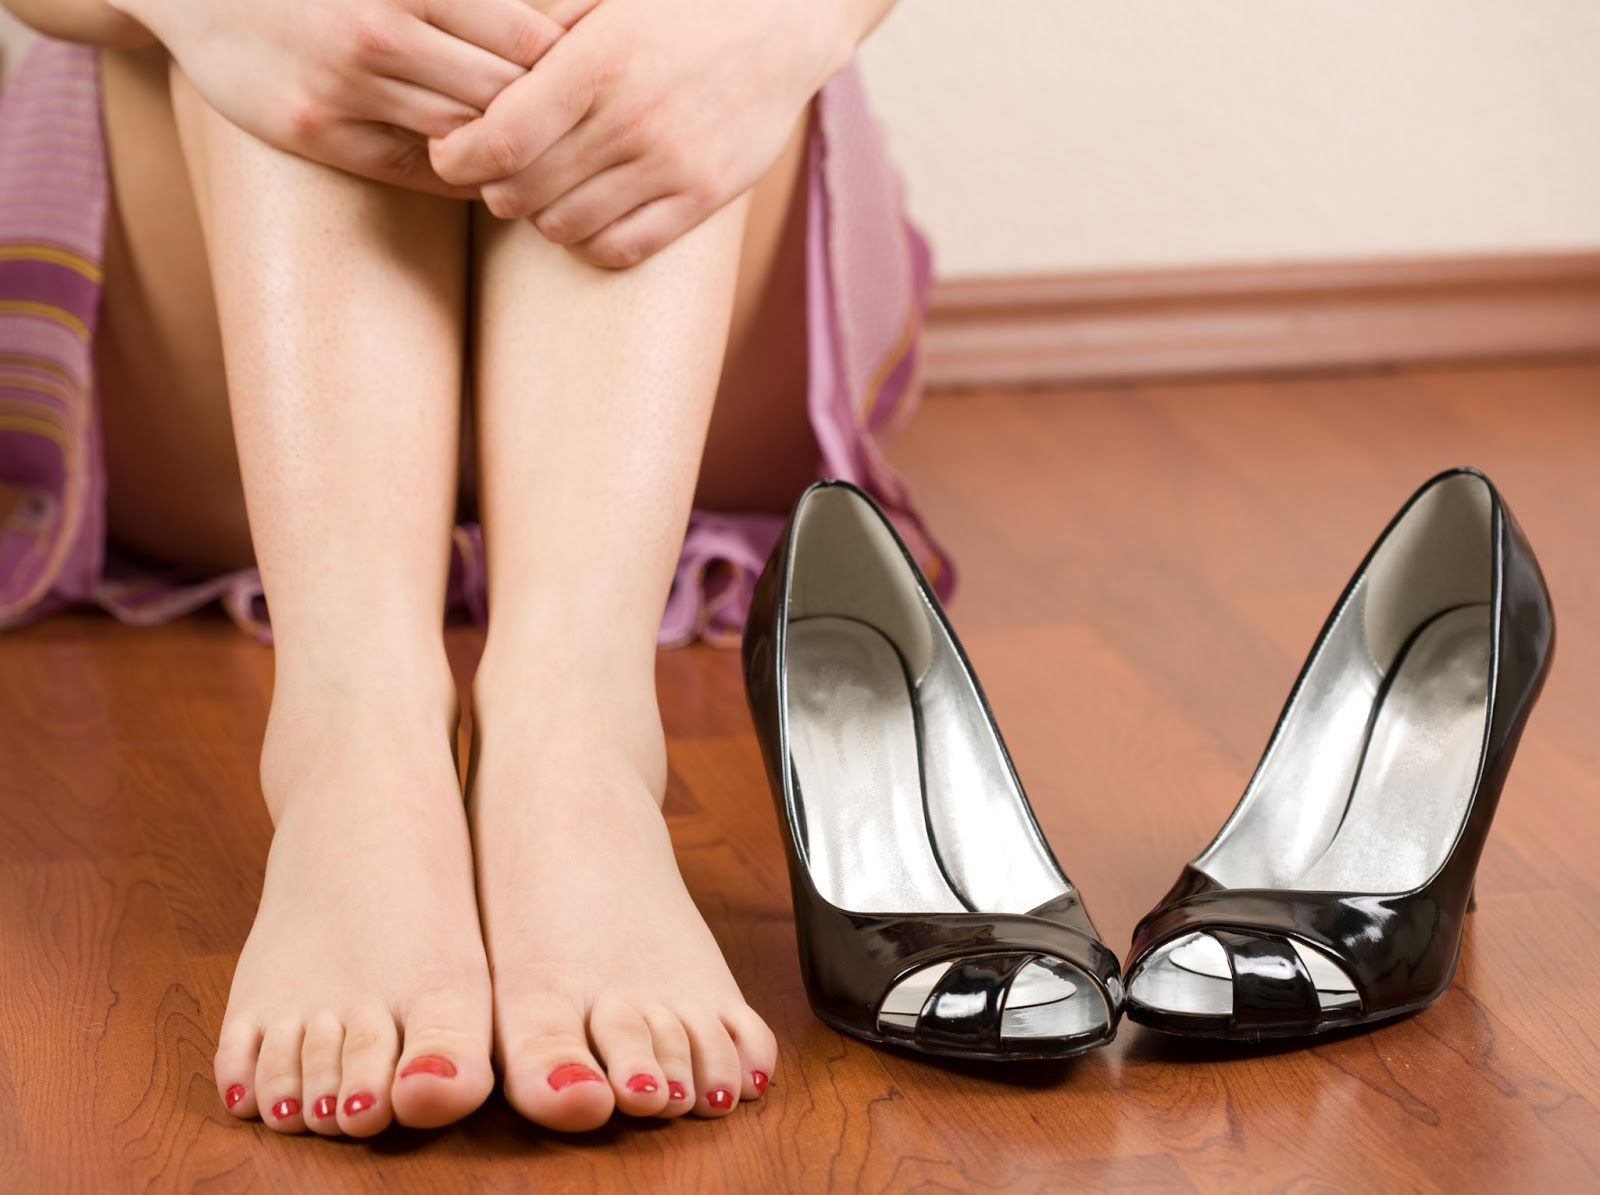 Women said that they suffered foot problems after wearing uncomfortable shoes.